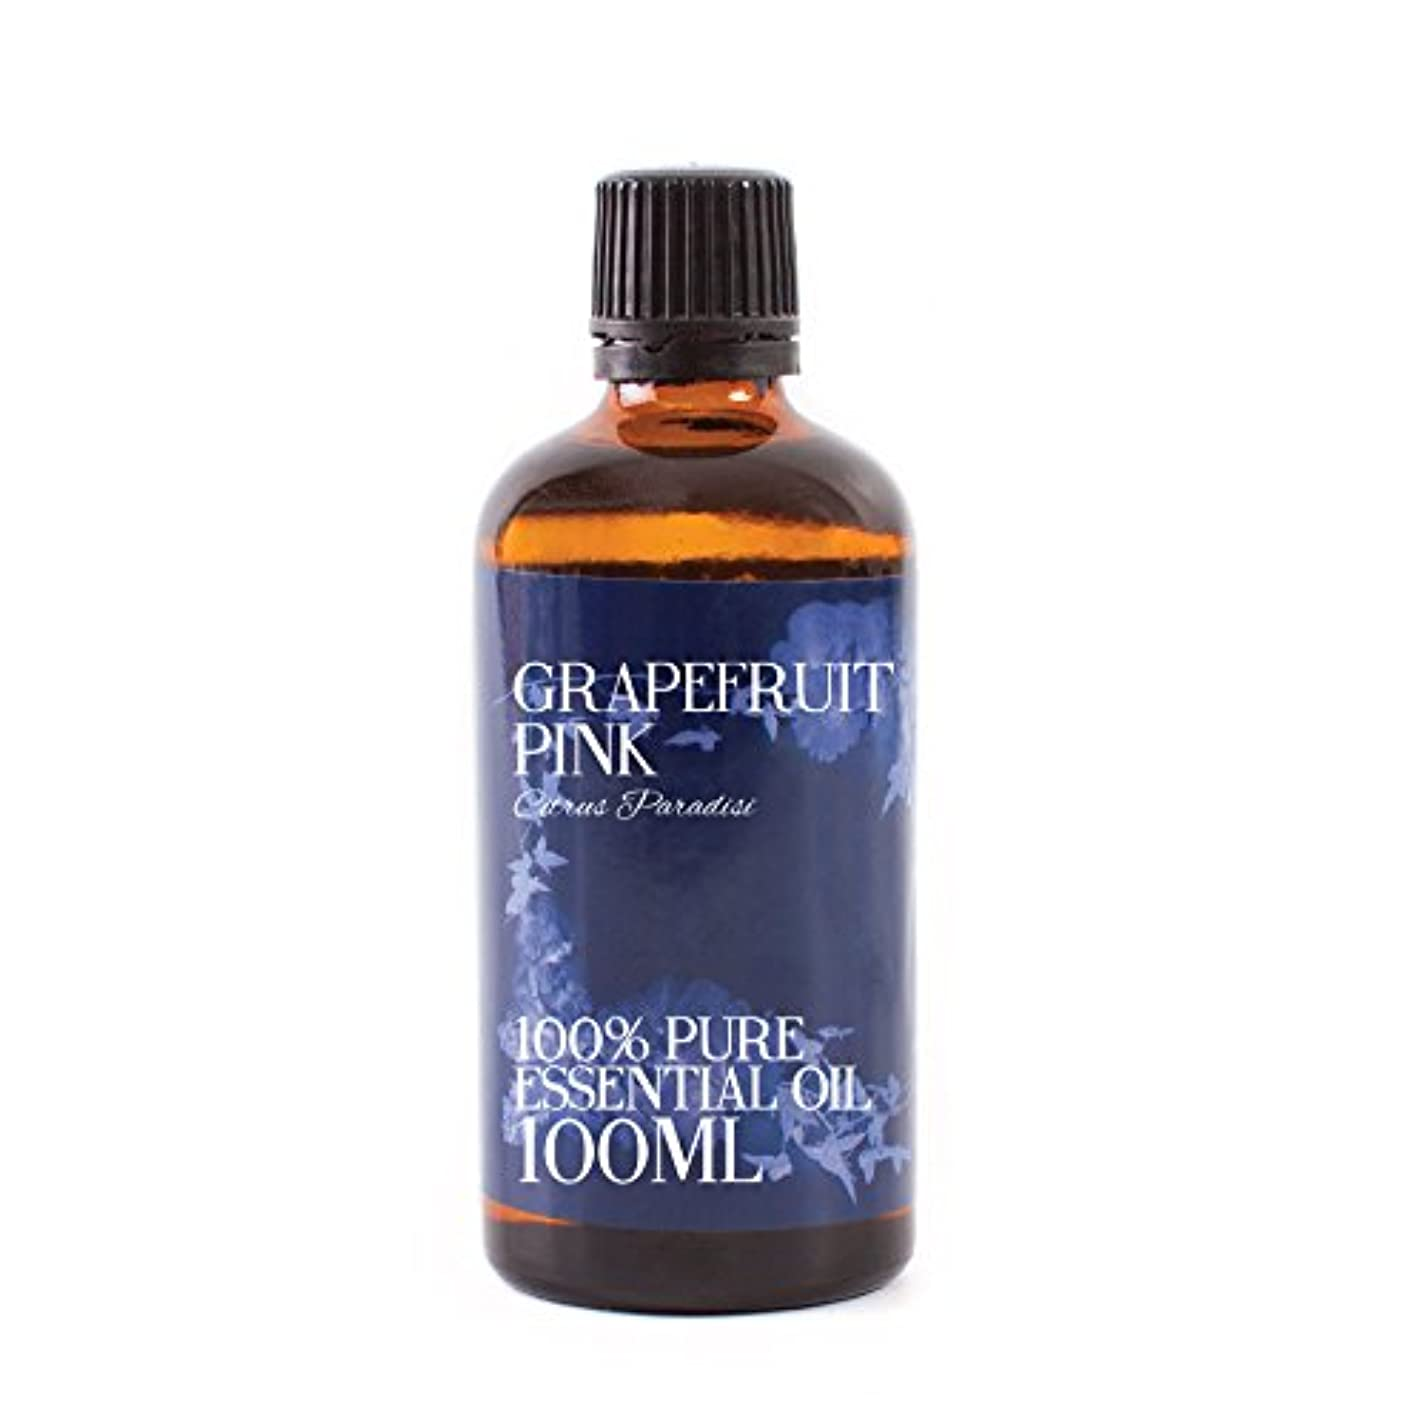 補助金ぼんやりした要旨Mystic Moments | Grapefruit Pink Essential Oil - 100ml - 100% Pure